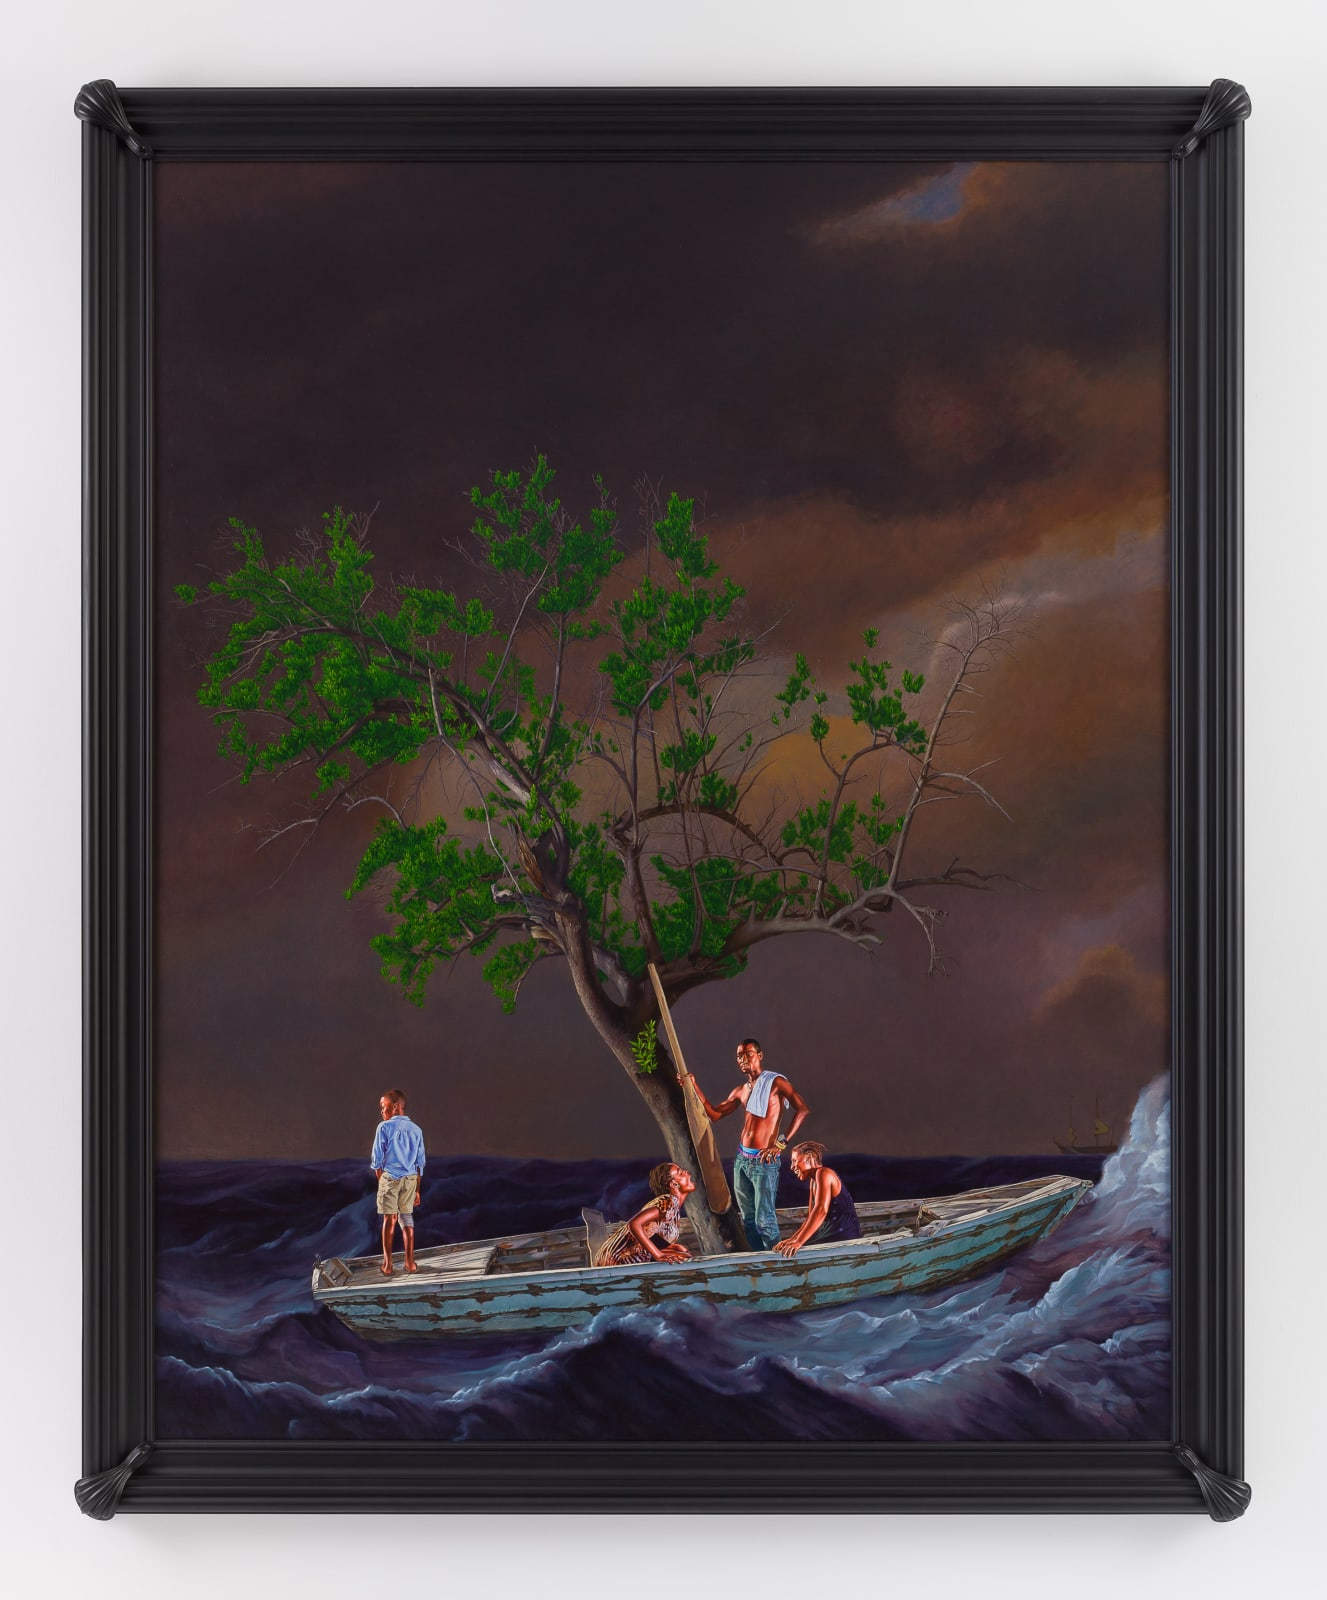 <p>Kehinde Wiley, 'Ship of Fools', 2017, Collection of the National Maritime Museum, London</p>